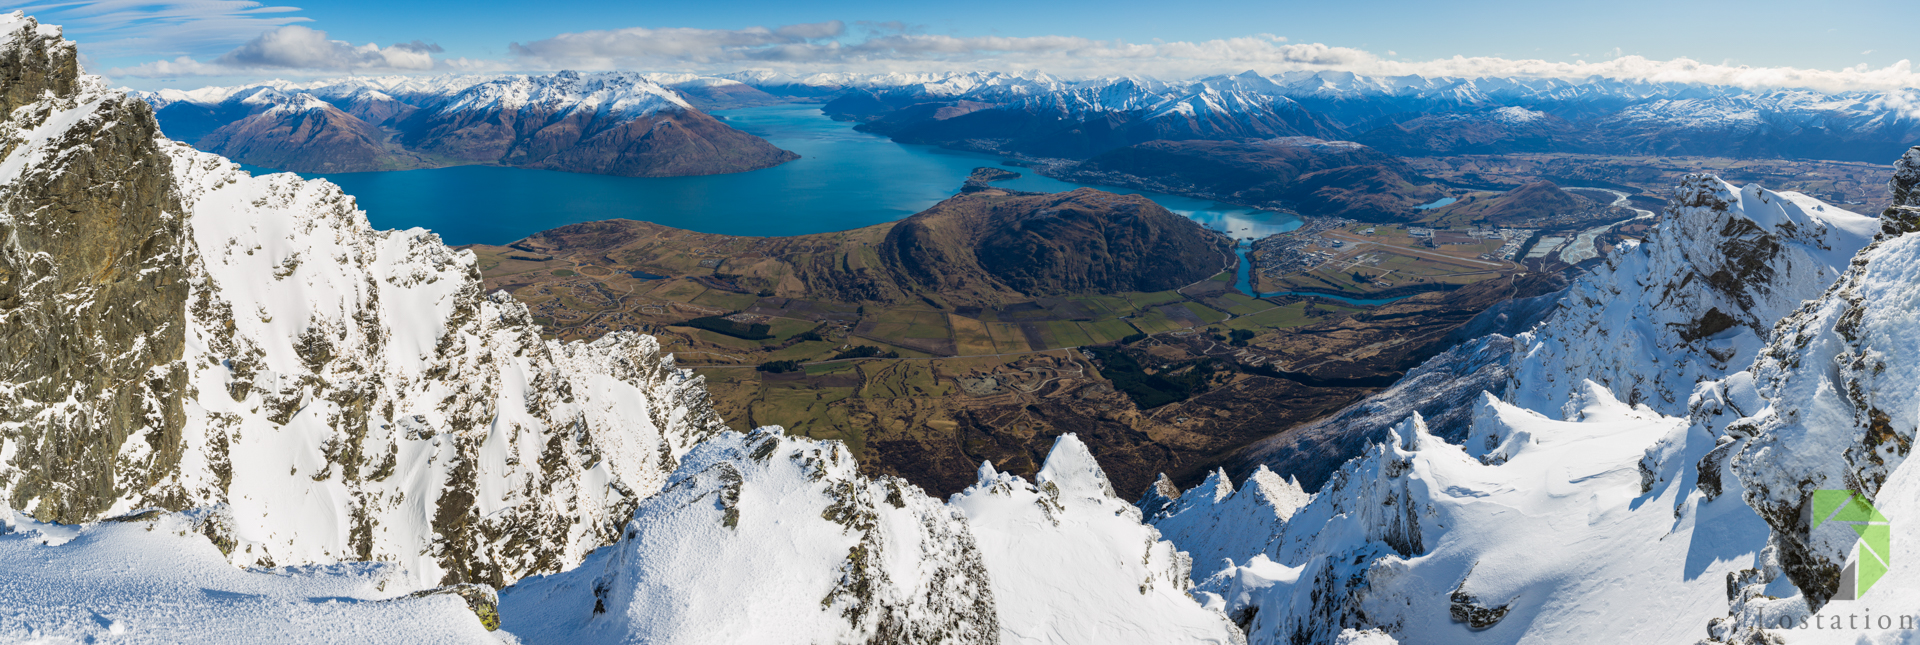 Queenstown overlook from the Remarkables-1